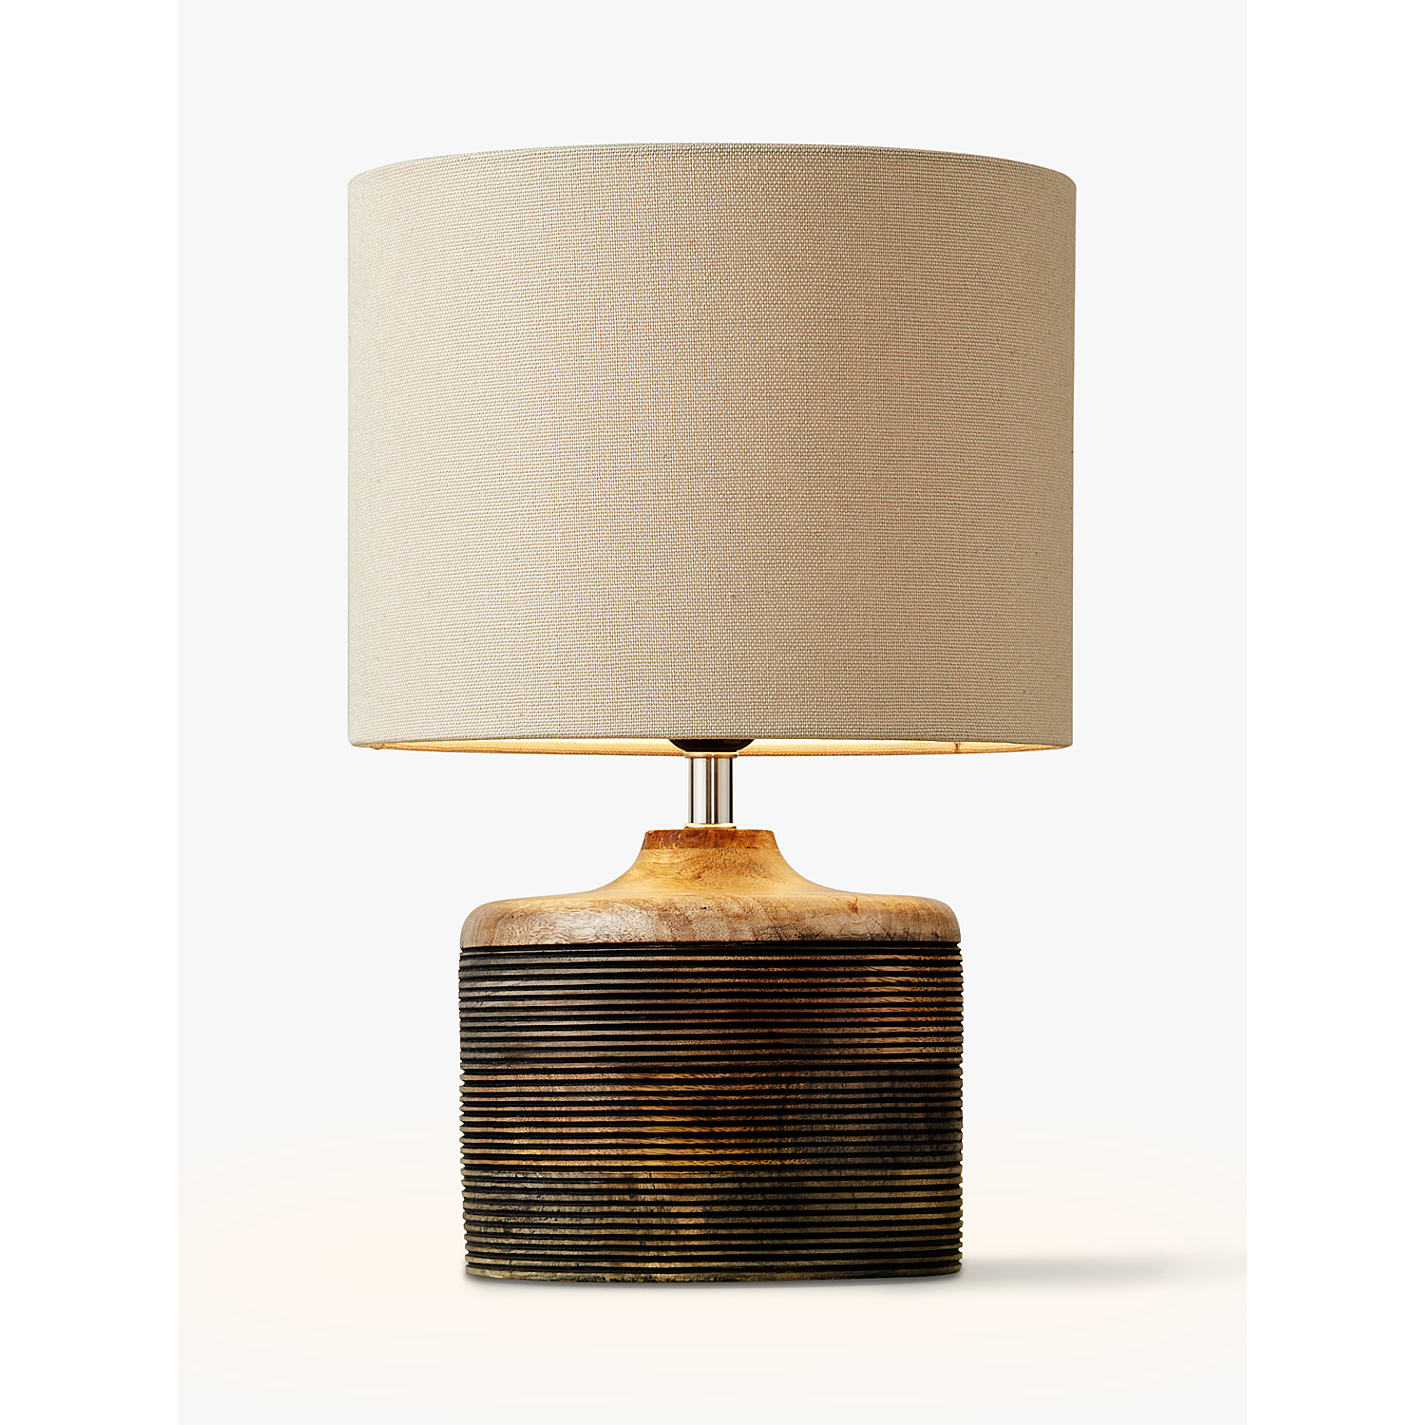 Wood desk table lamps john lewis buy john lewis ira ribbed wooden table lamp natural online at johnlewis mozeypictures Gallery